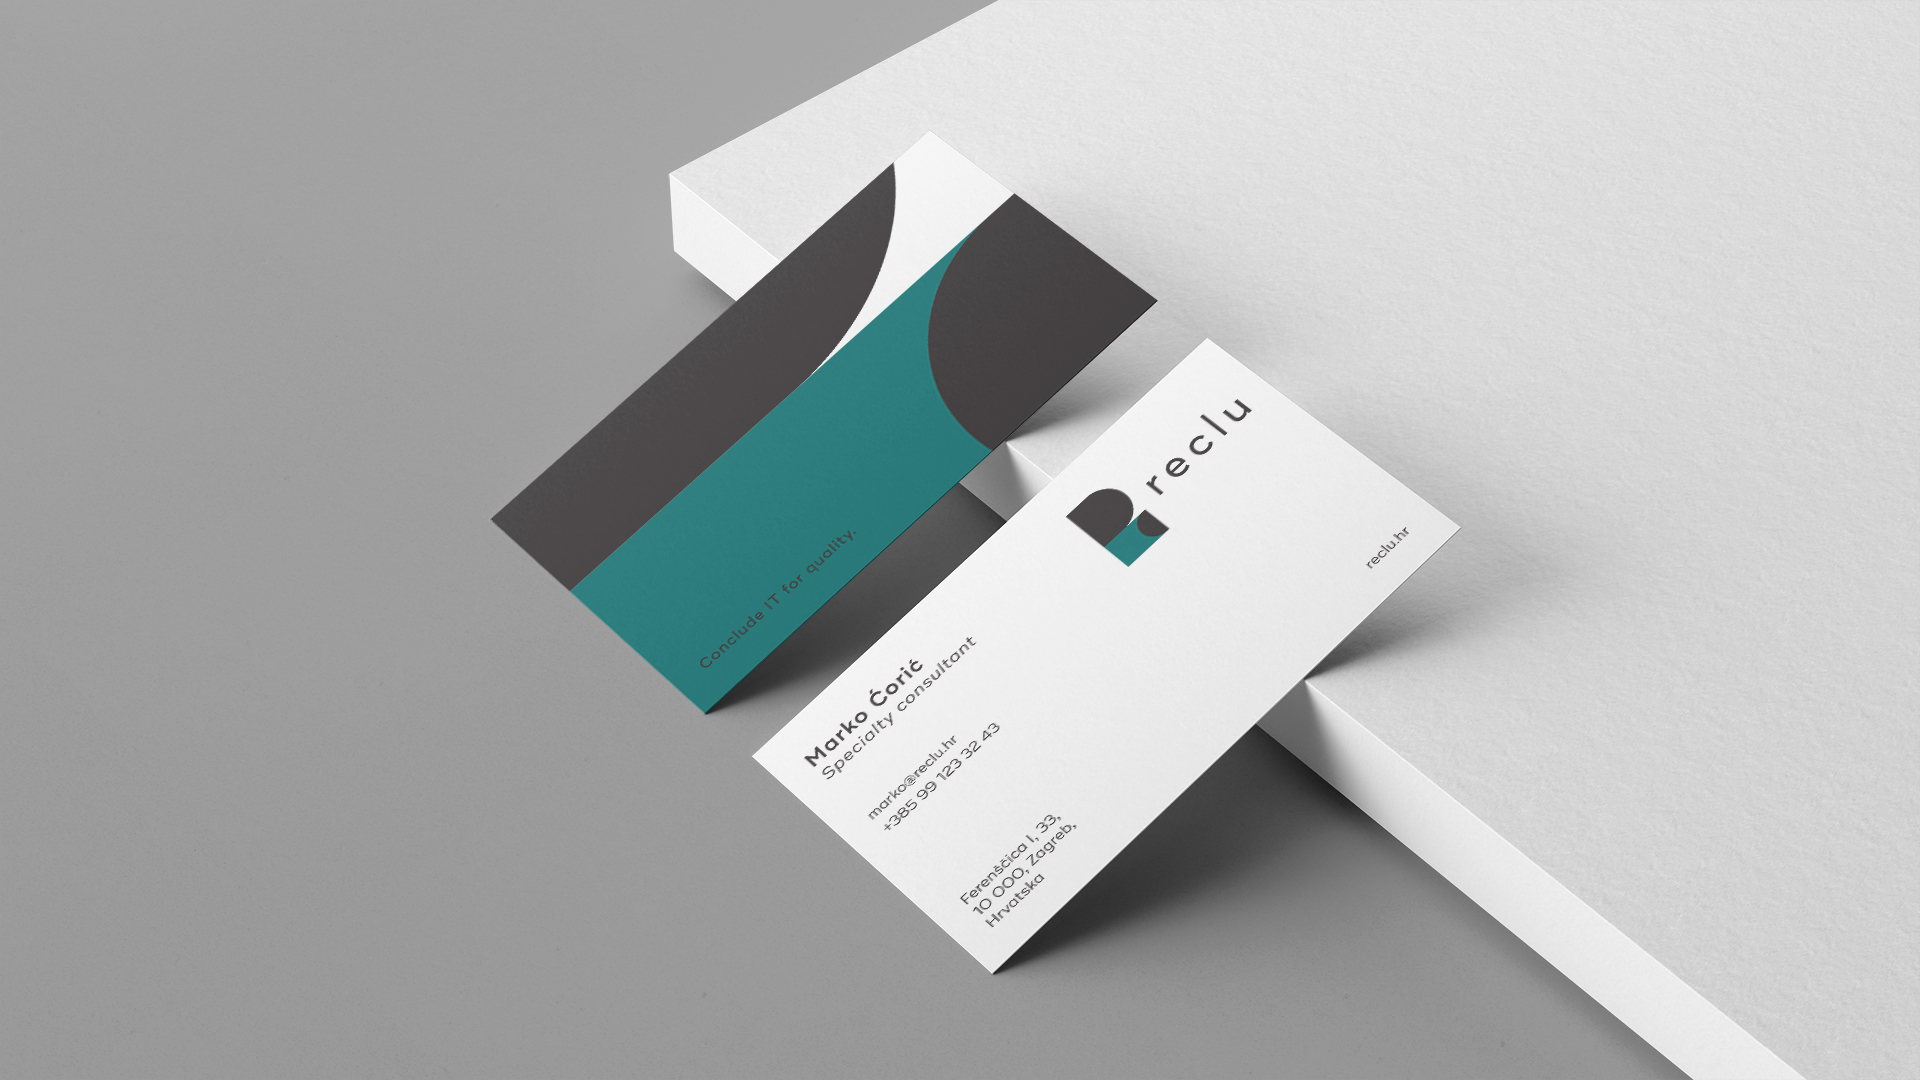 Reclu-Visual-Identity-by-Emtisquare-6